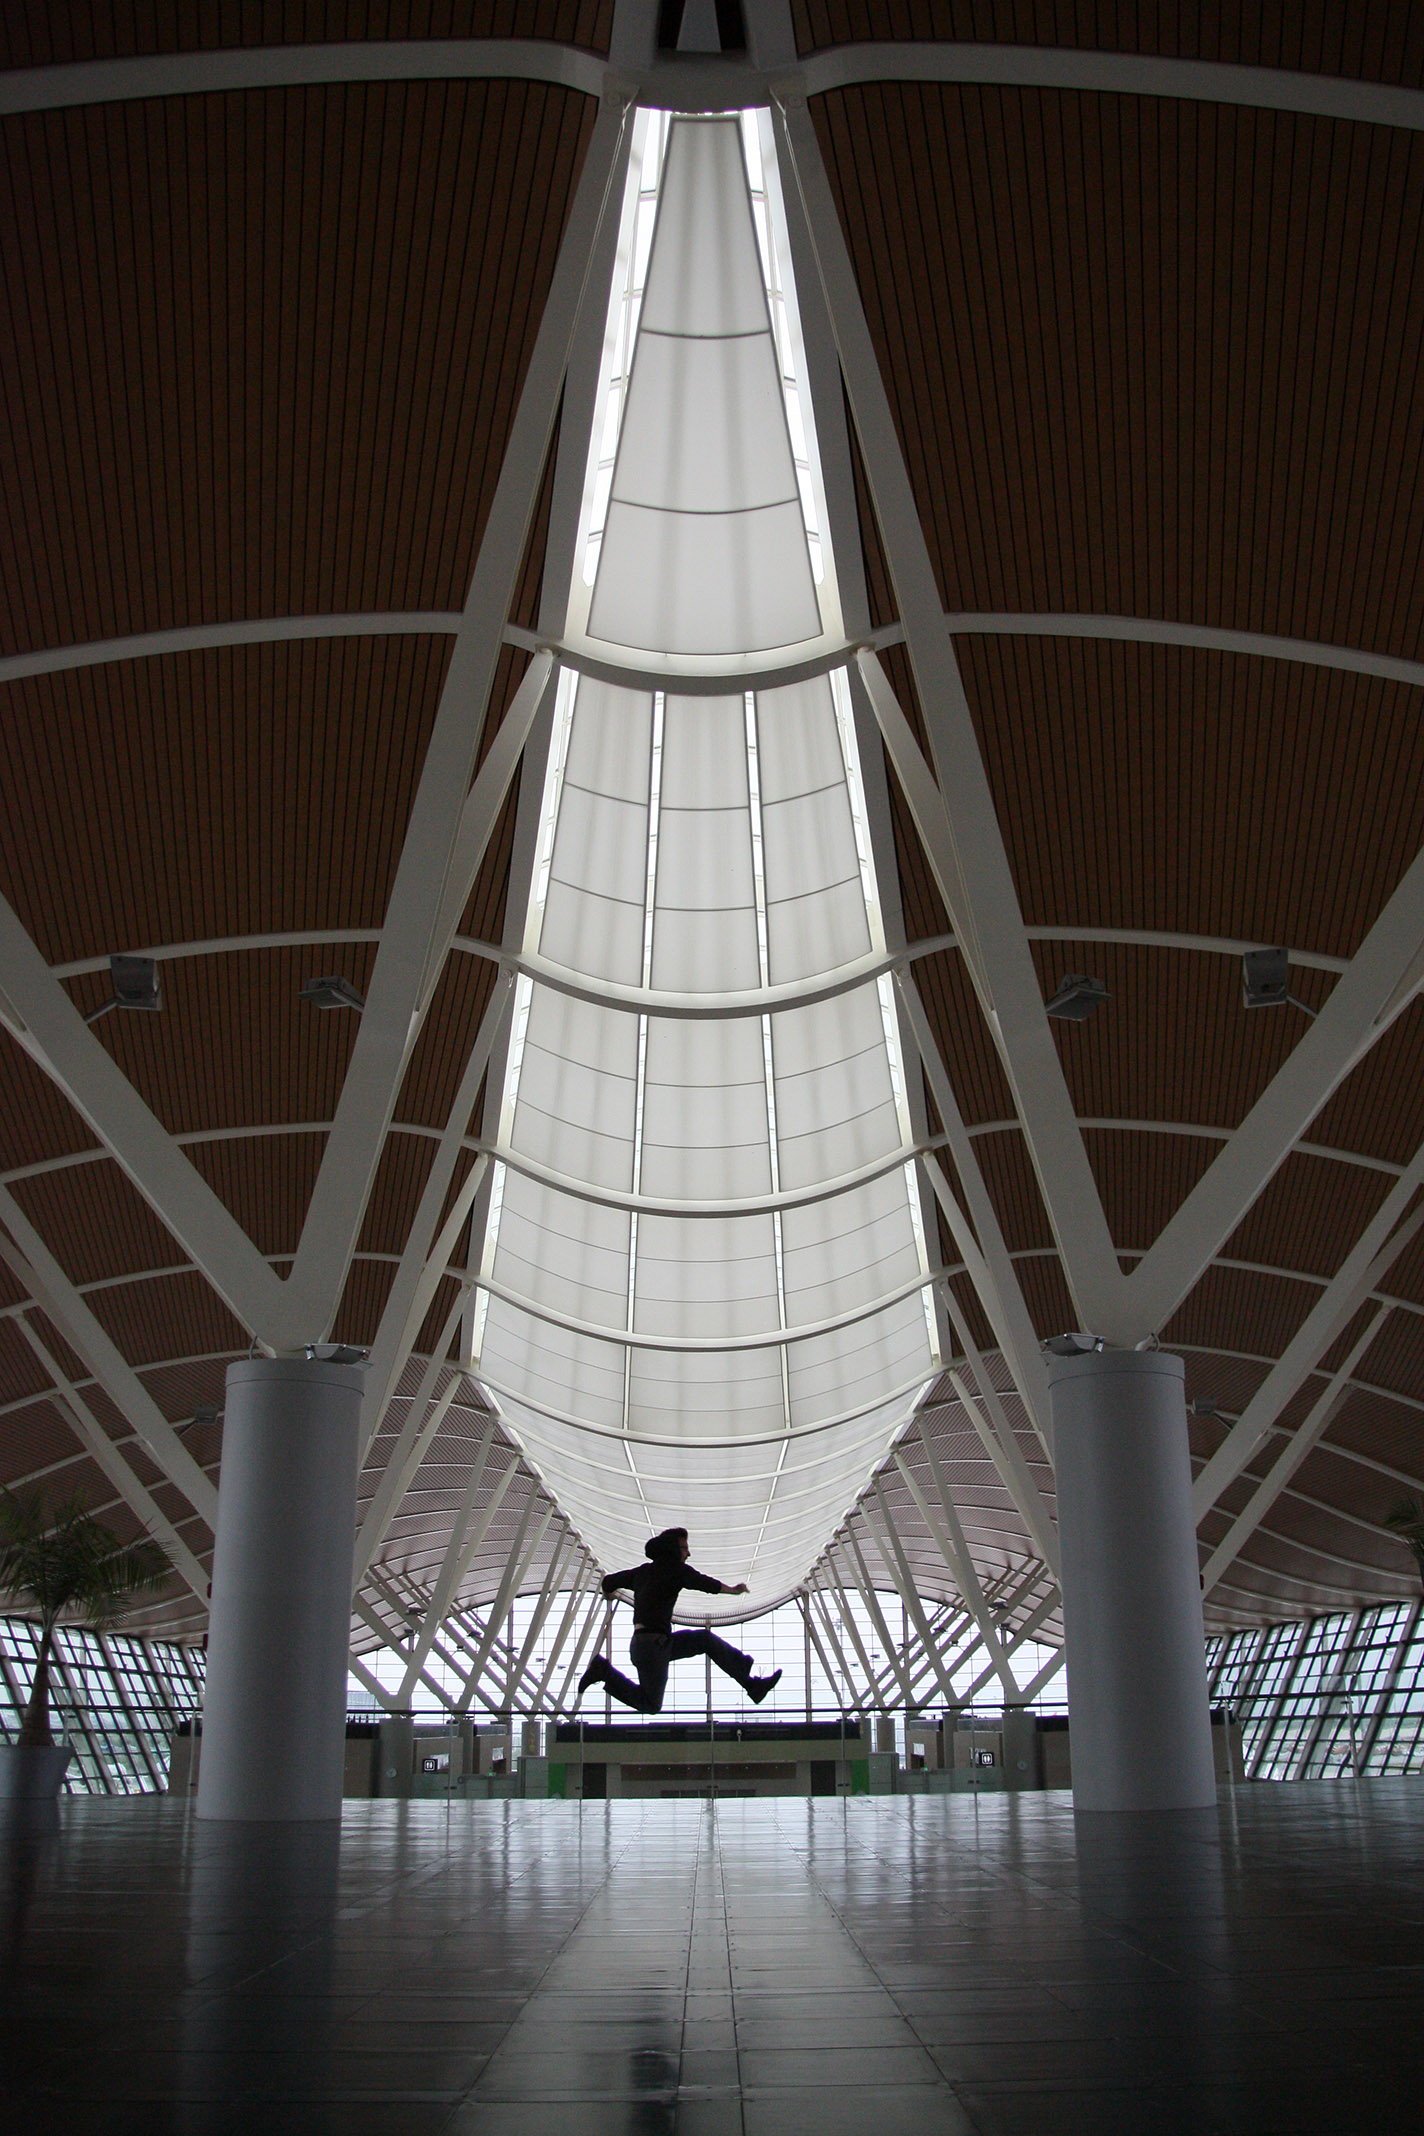 Airport_Art_Patrick_Jump_01.jpg - Airport Shanghai: Big, modern and empty... Another tradtional Chinese jump-pciture.